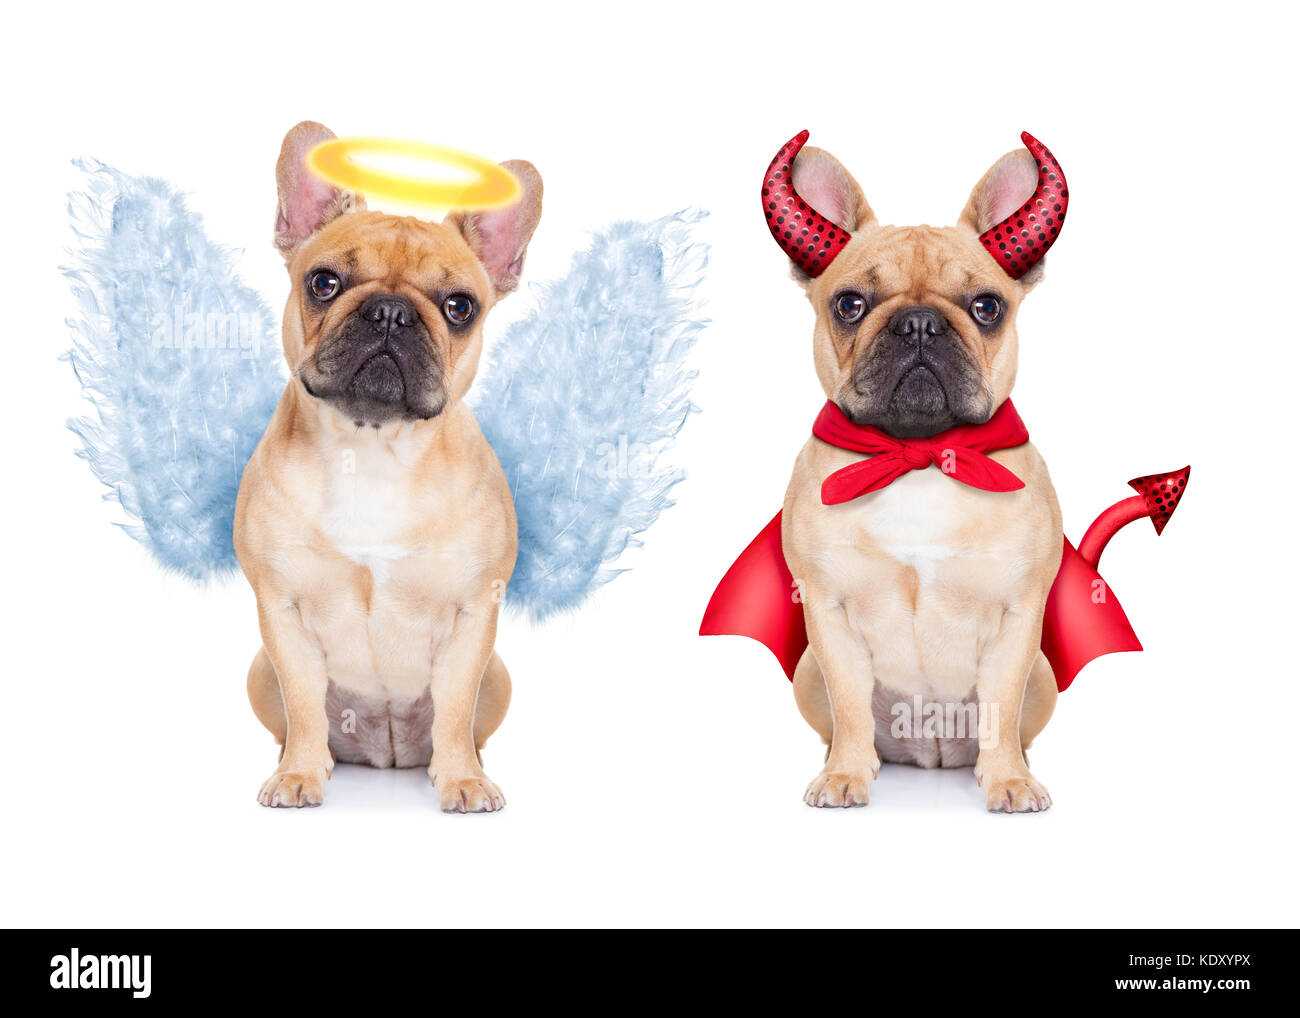 Devil and Angel fawn french bulldog dogs sitting side by side deciding between right and wrong , good or bad, isolated - Stock Image